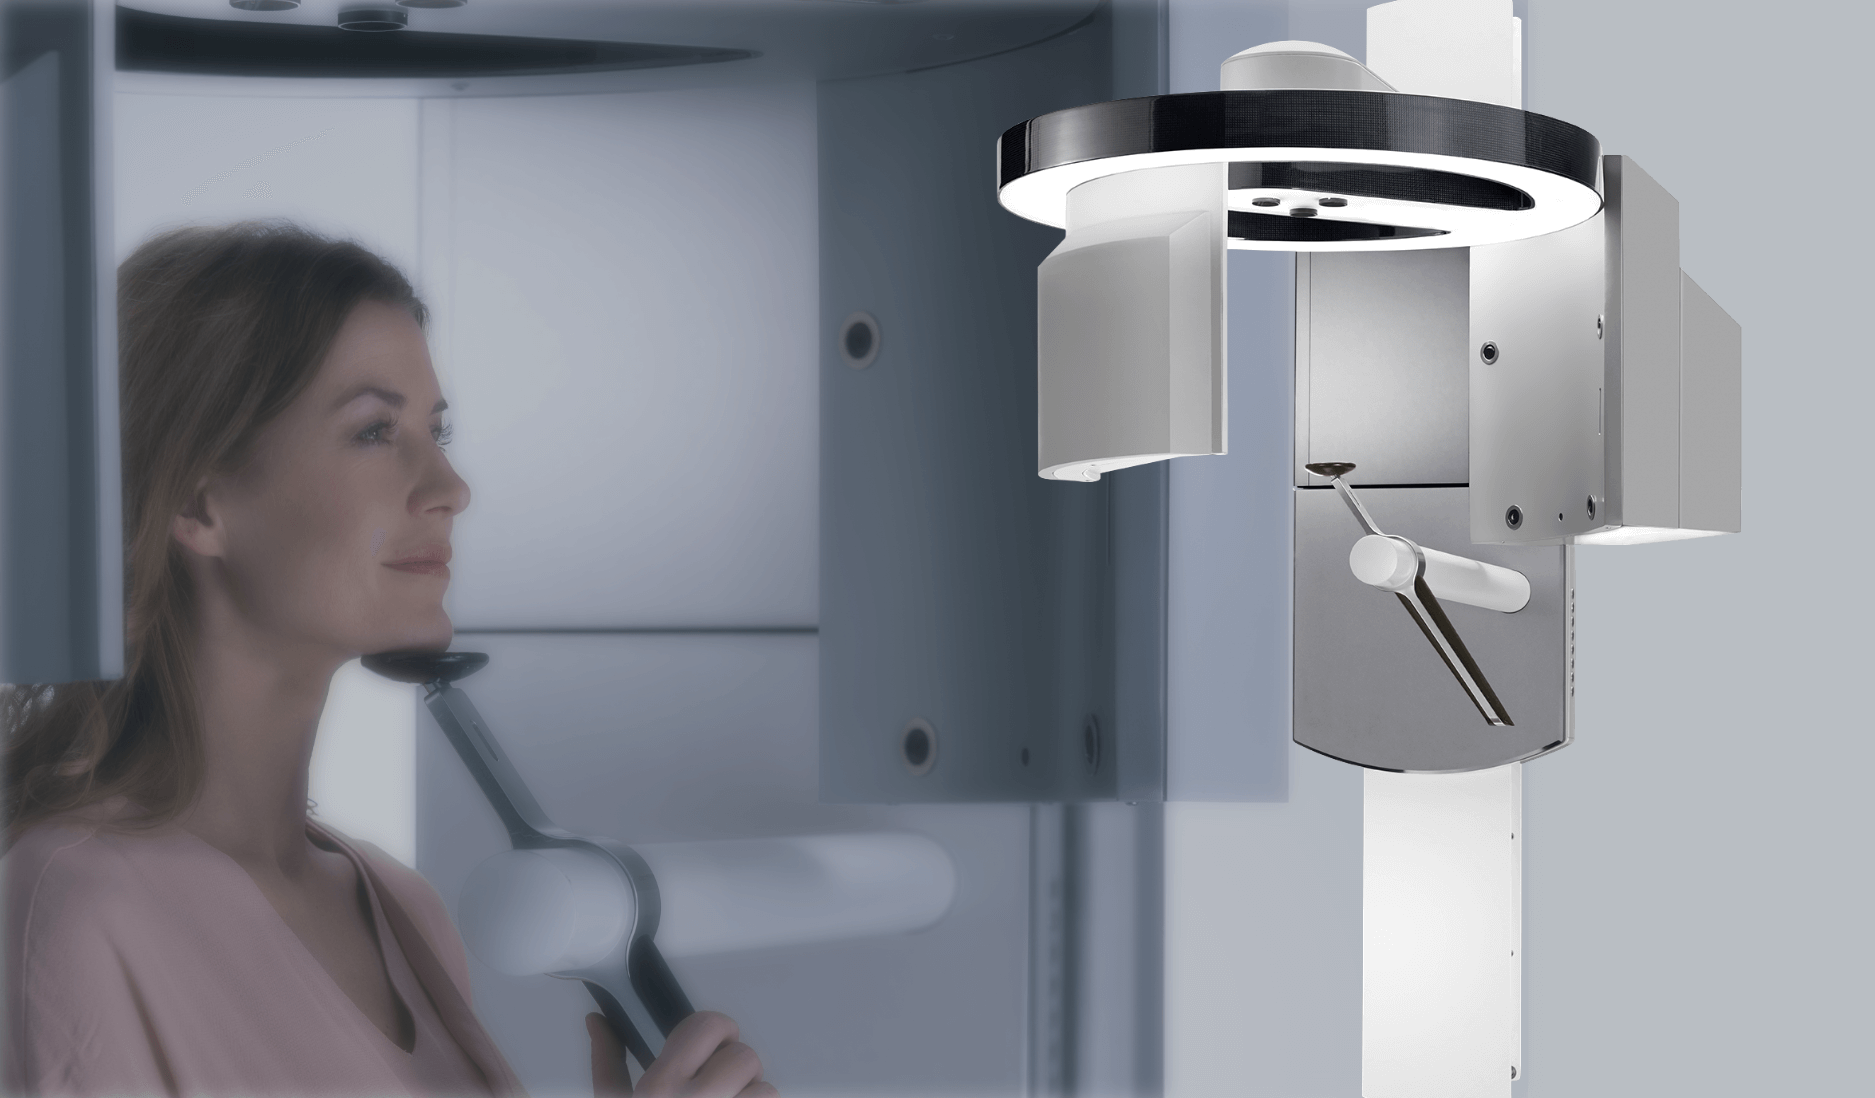 3shape x1 cbct scanner